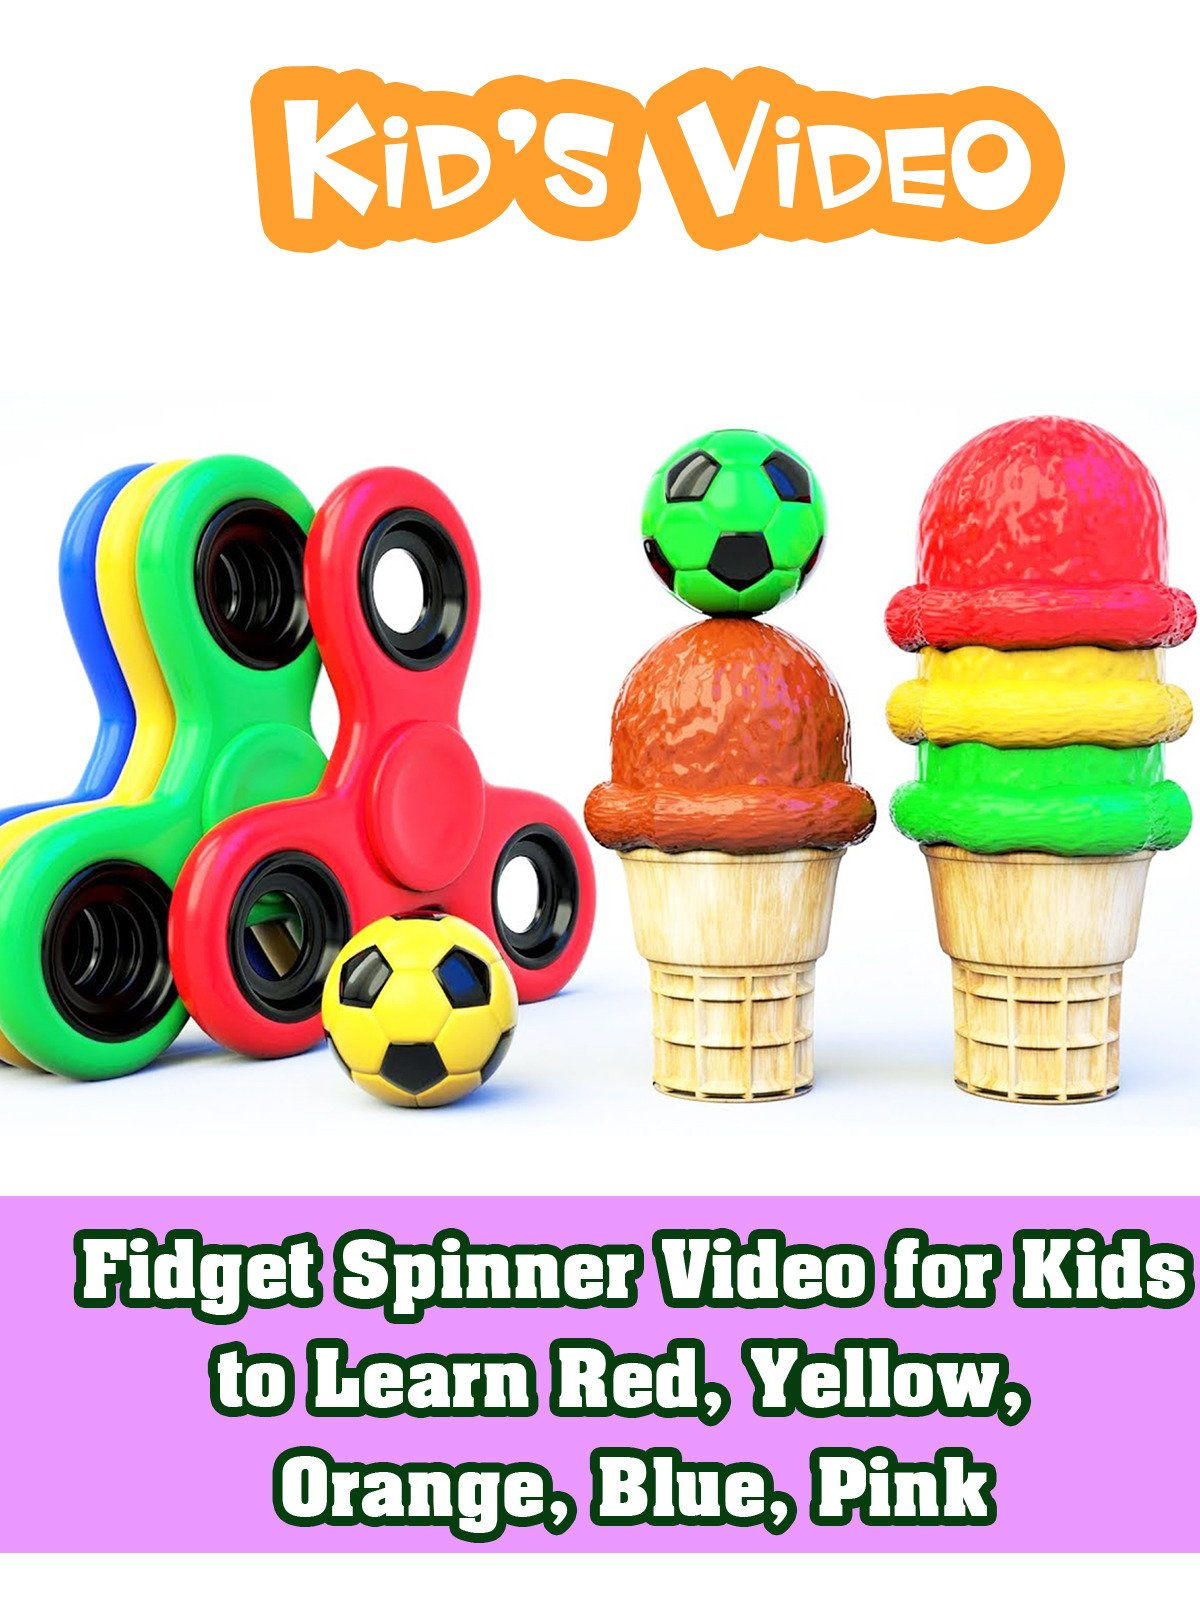 Fidget Spinner Video for Kids to Learn Red, Yellow, Orange, Blue, Pink